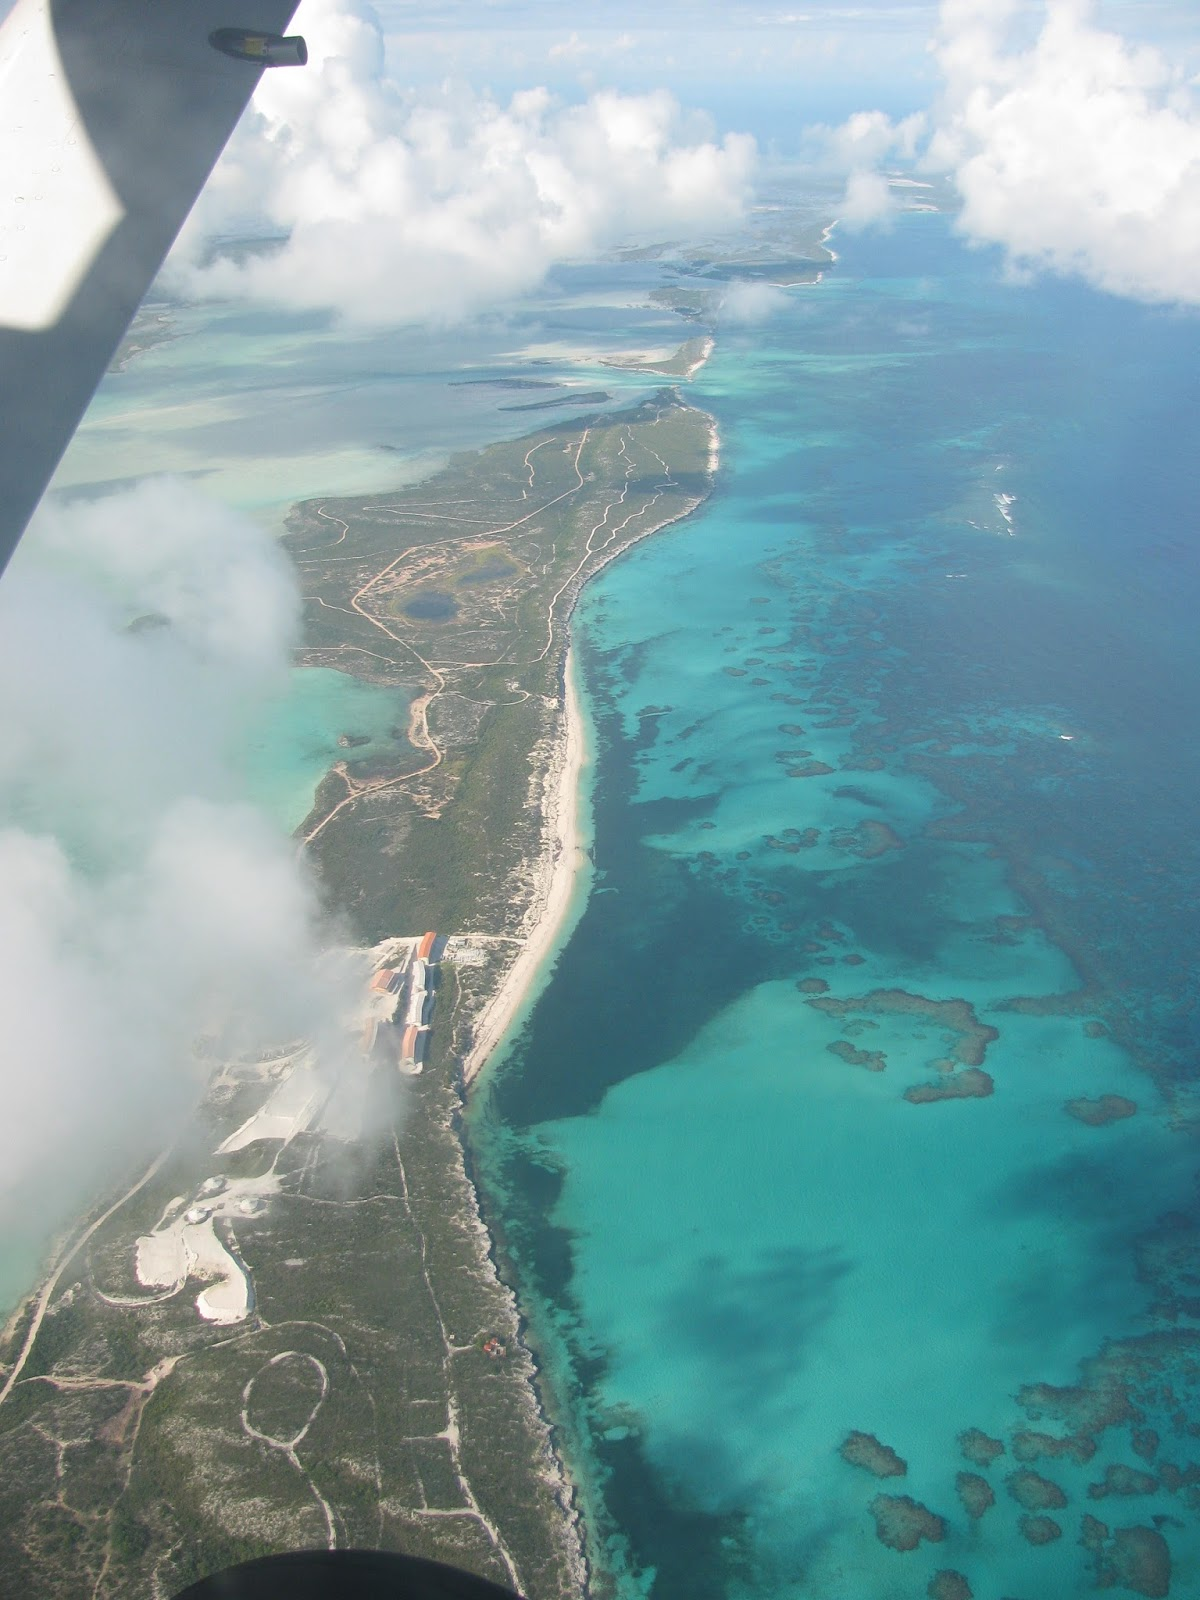 Top Things to do in Grand Turk, Turks and Caicos Islands